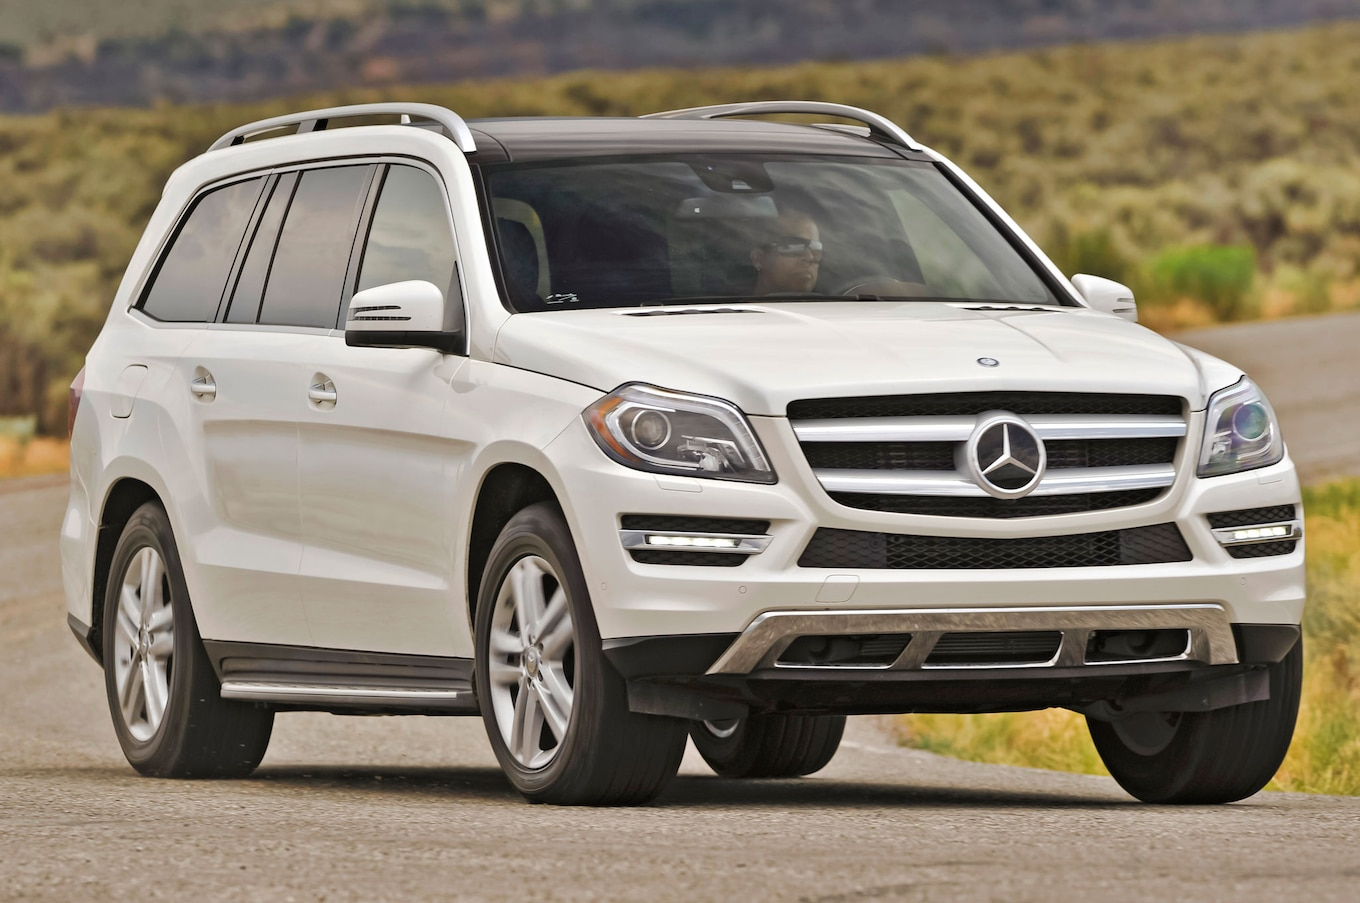 Totd Pick One  Smaller Bmw X5 Or Larger Mercedesbenz Gl?